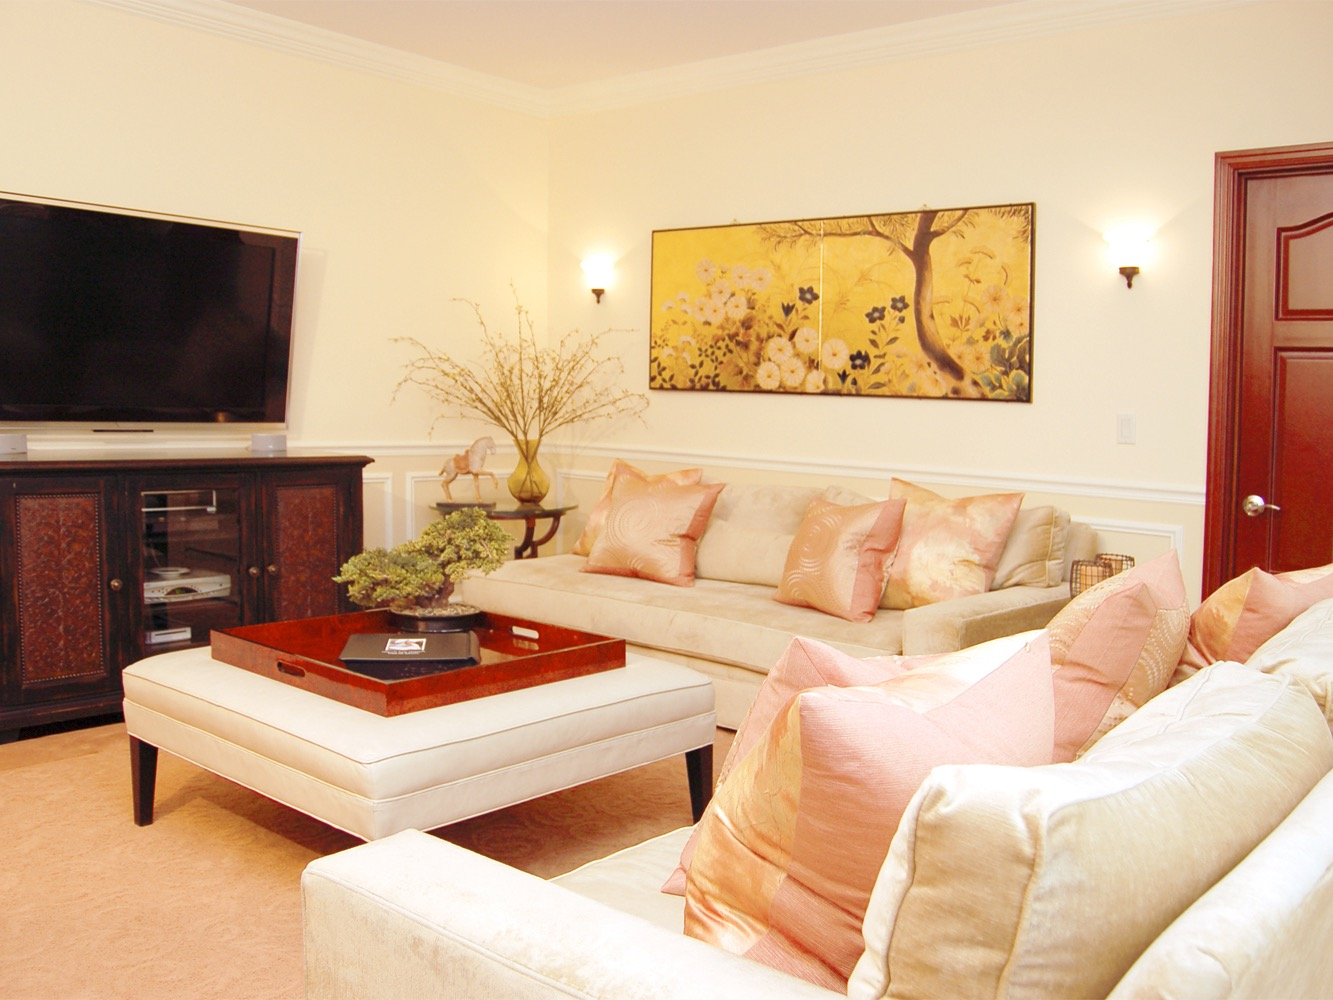 Stylish Oriental Themed Living Room Features Beautiful Artwork, Light Toned Furniture And Entertainment Area (Image 20 of 20)